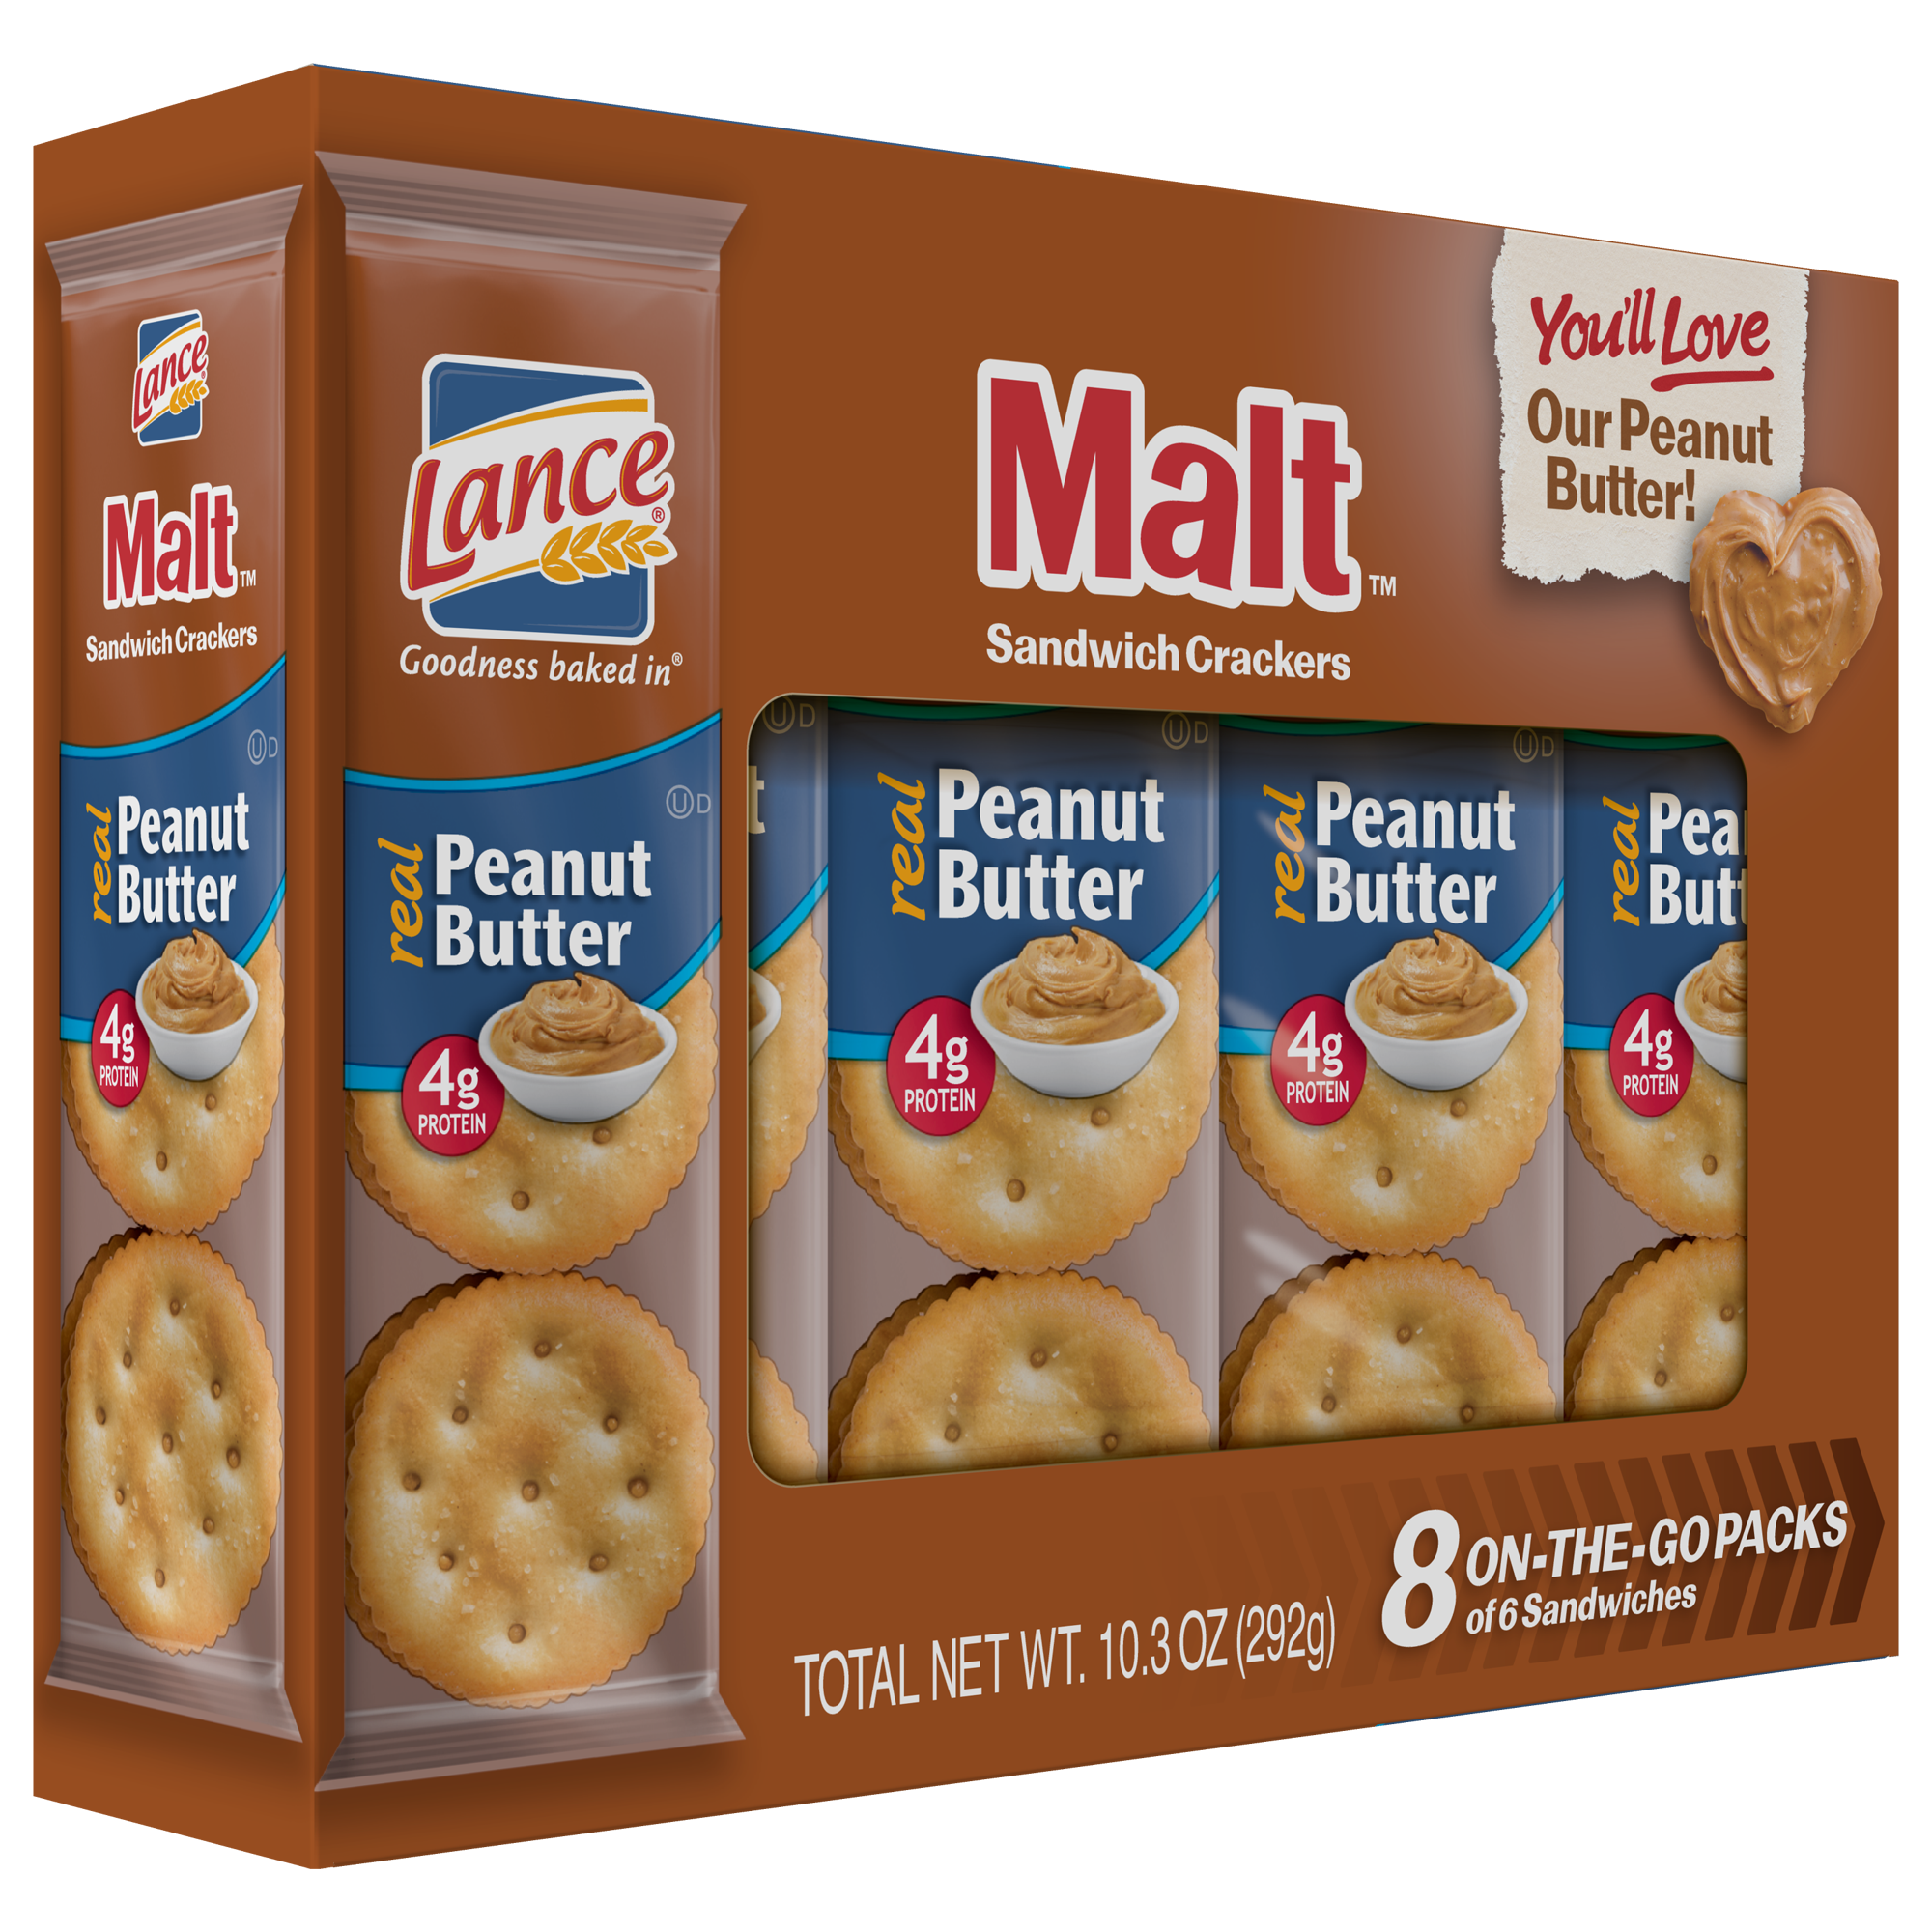 Lance Malt Peanut Butter Crackers 10.3 oz 8 Count Boxes - Single Pack